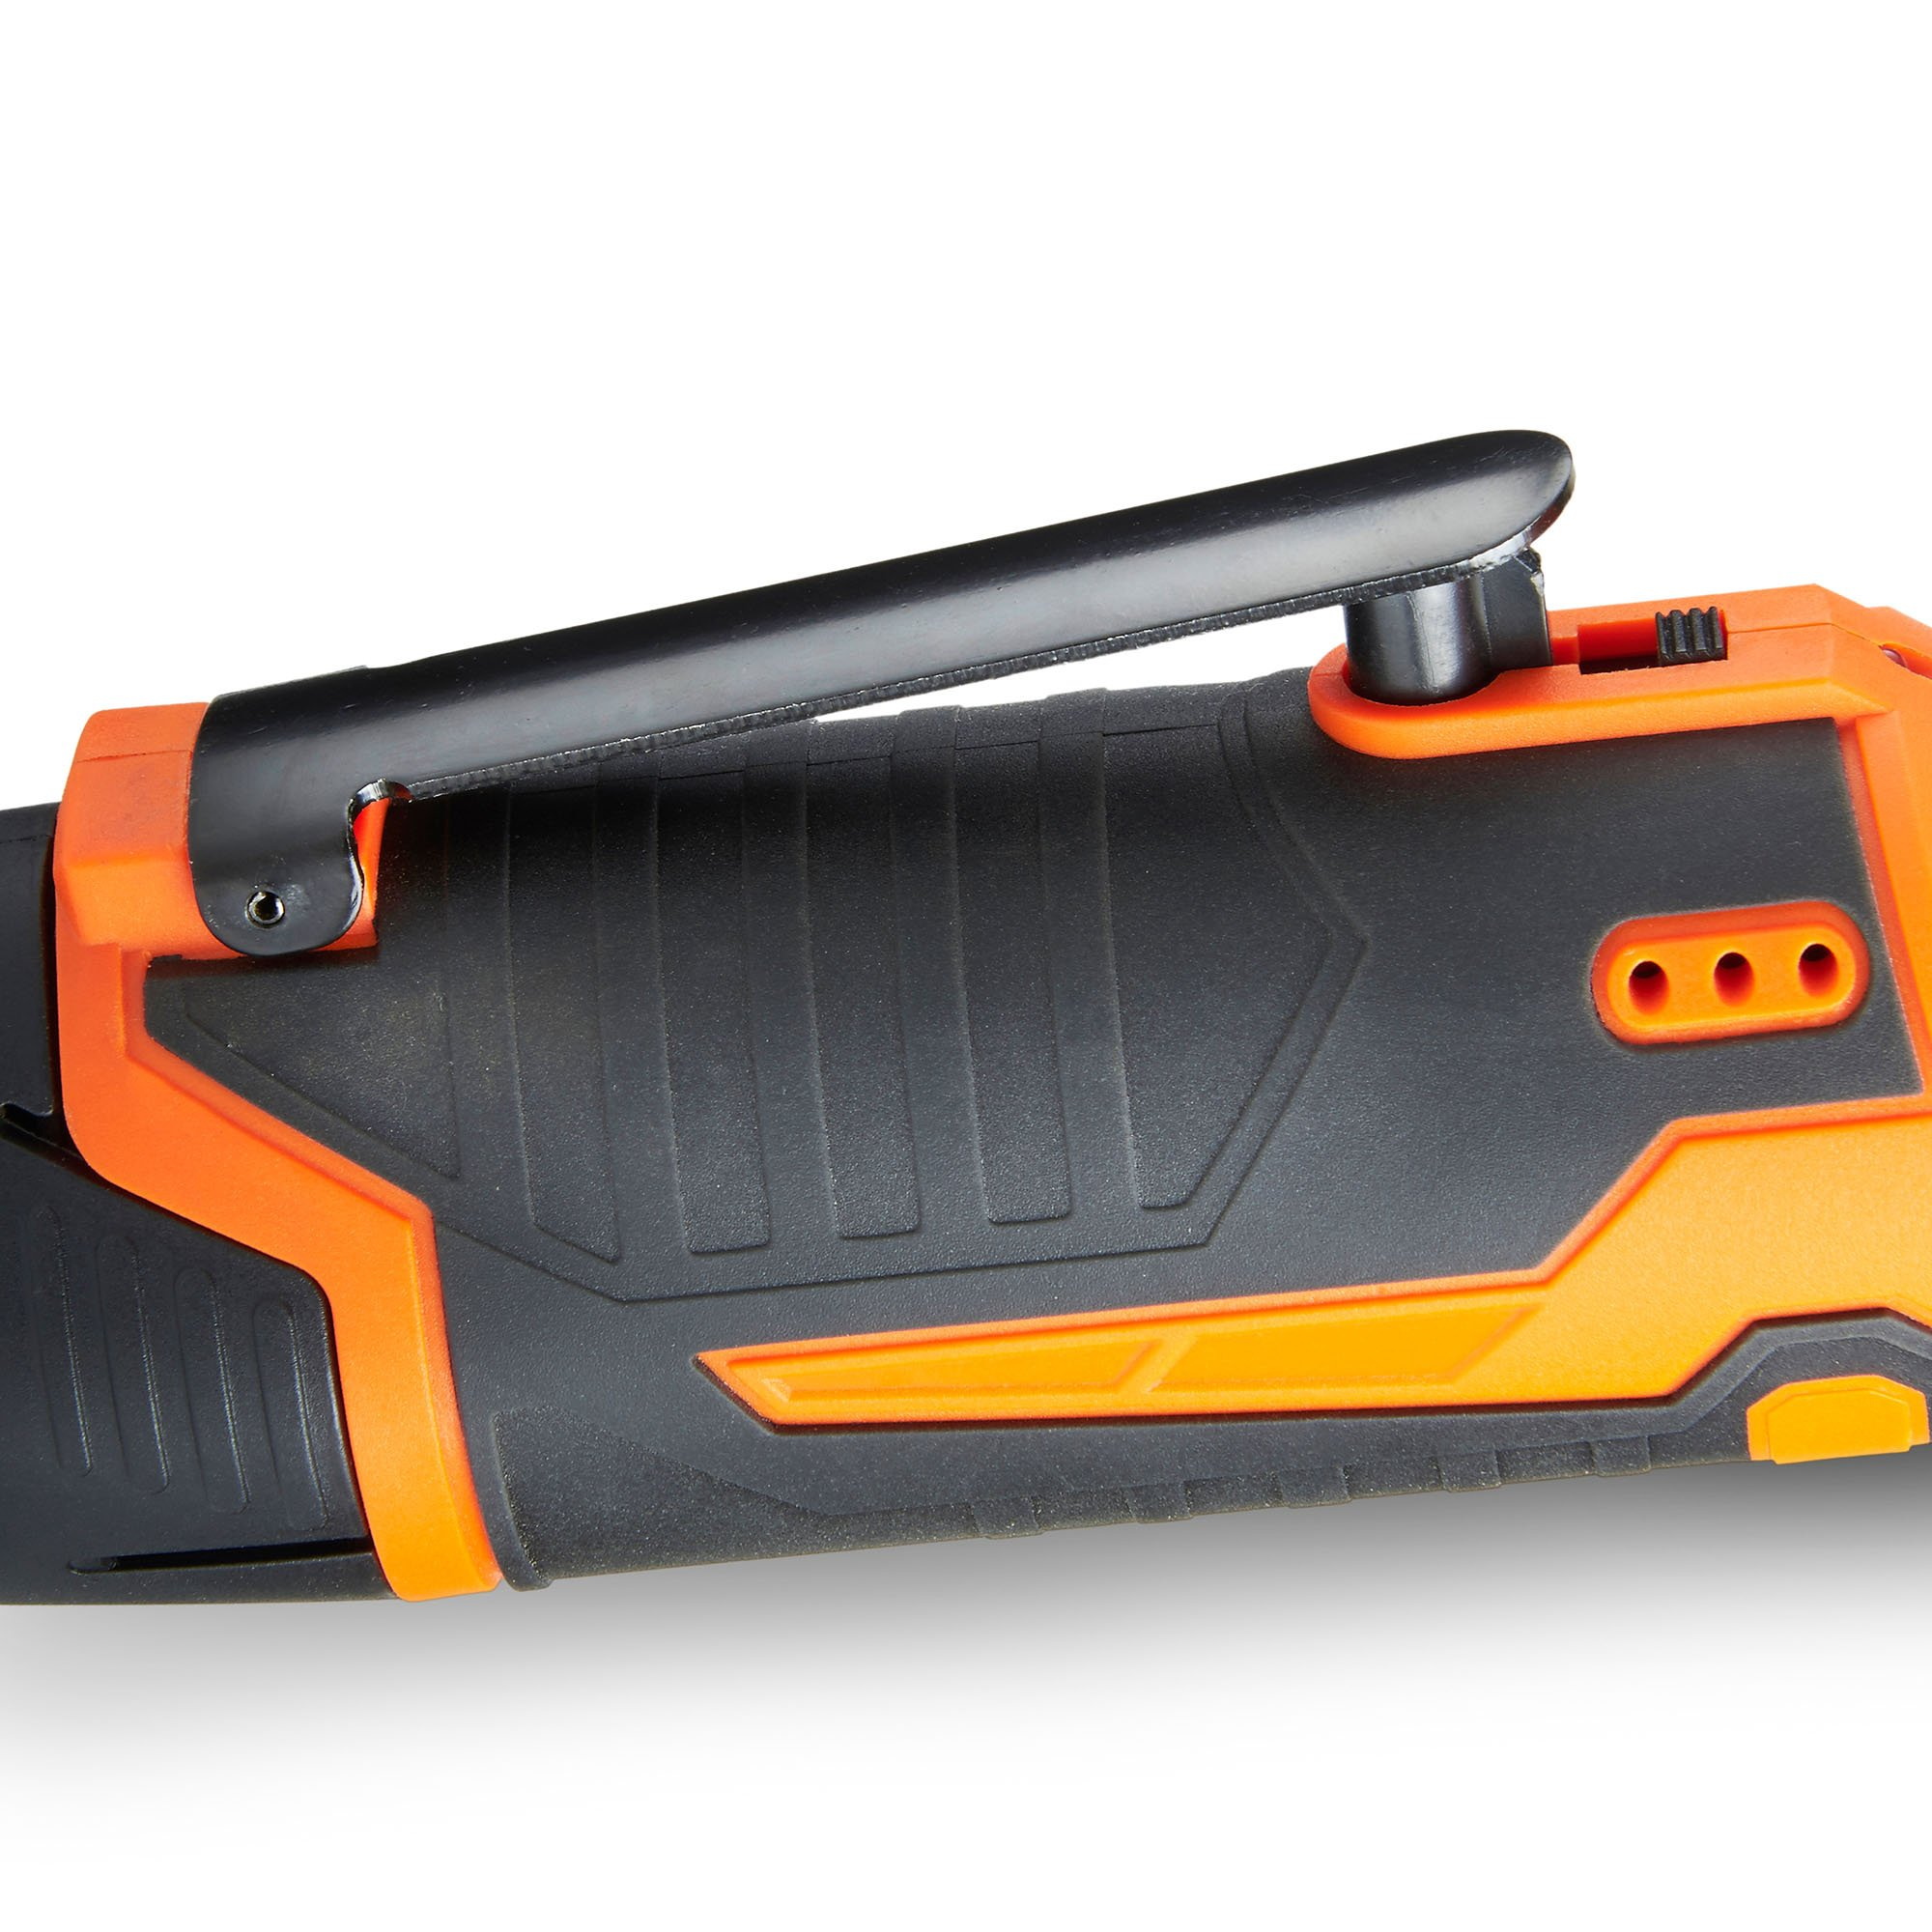 VonHaus Cordless Electric Ratchet Wrench Set with 12V Lithium-Ion Battery and Charger Kit 3/8'' Drive 15/145US by VonHaus (Image #5)